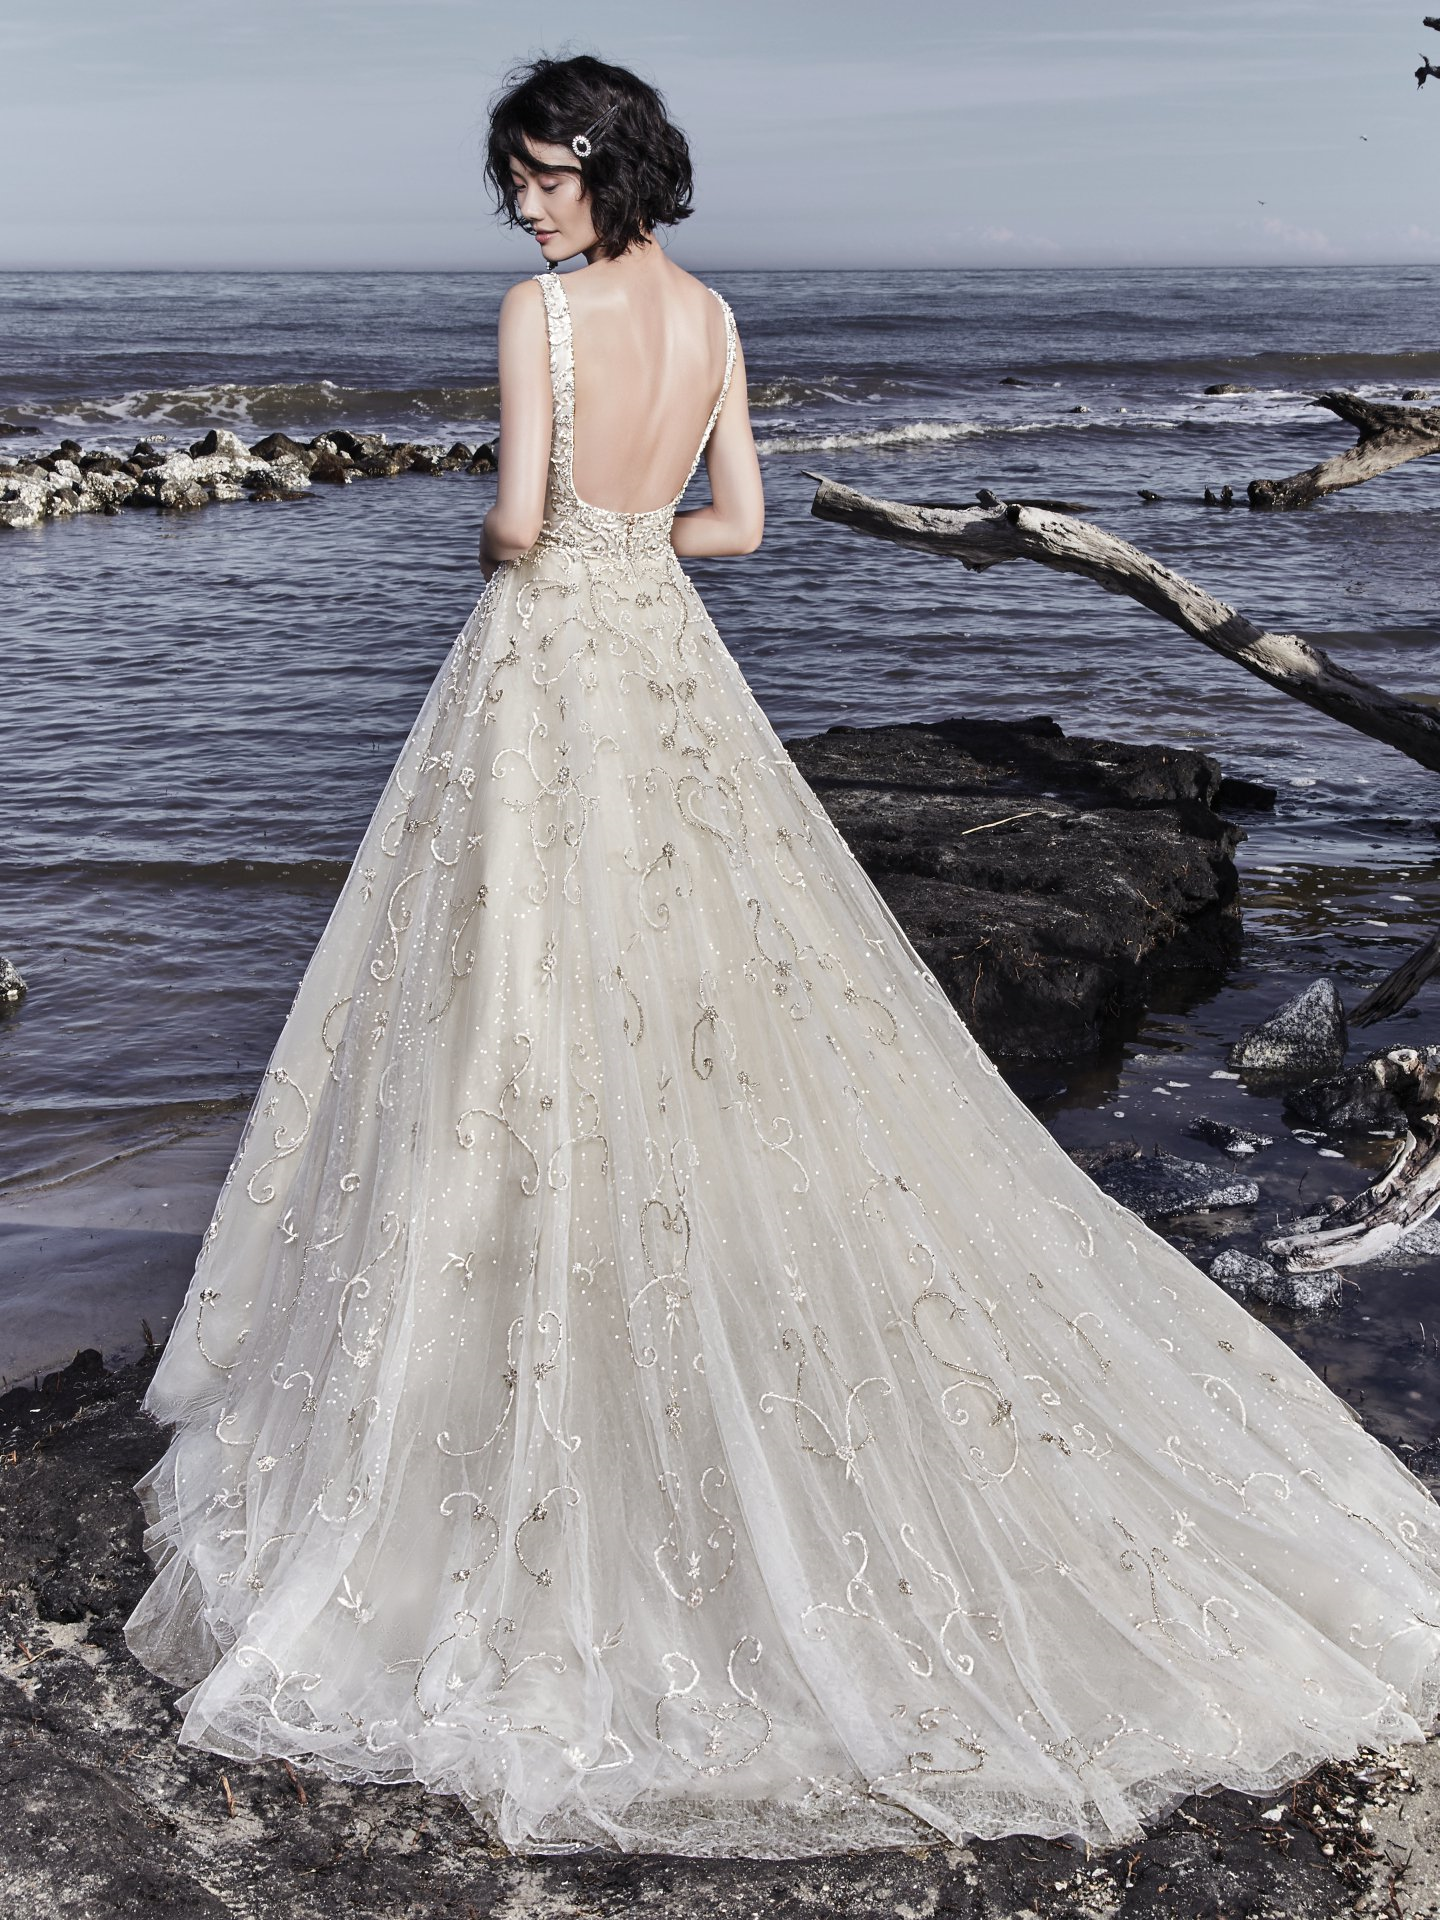 Another look at the maggie sottero maven new arrivals in